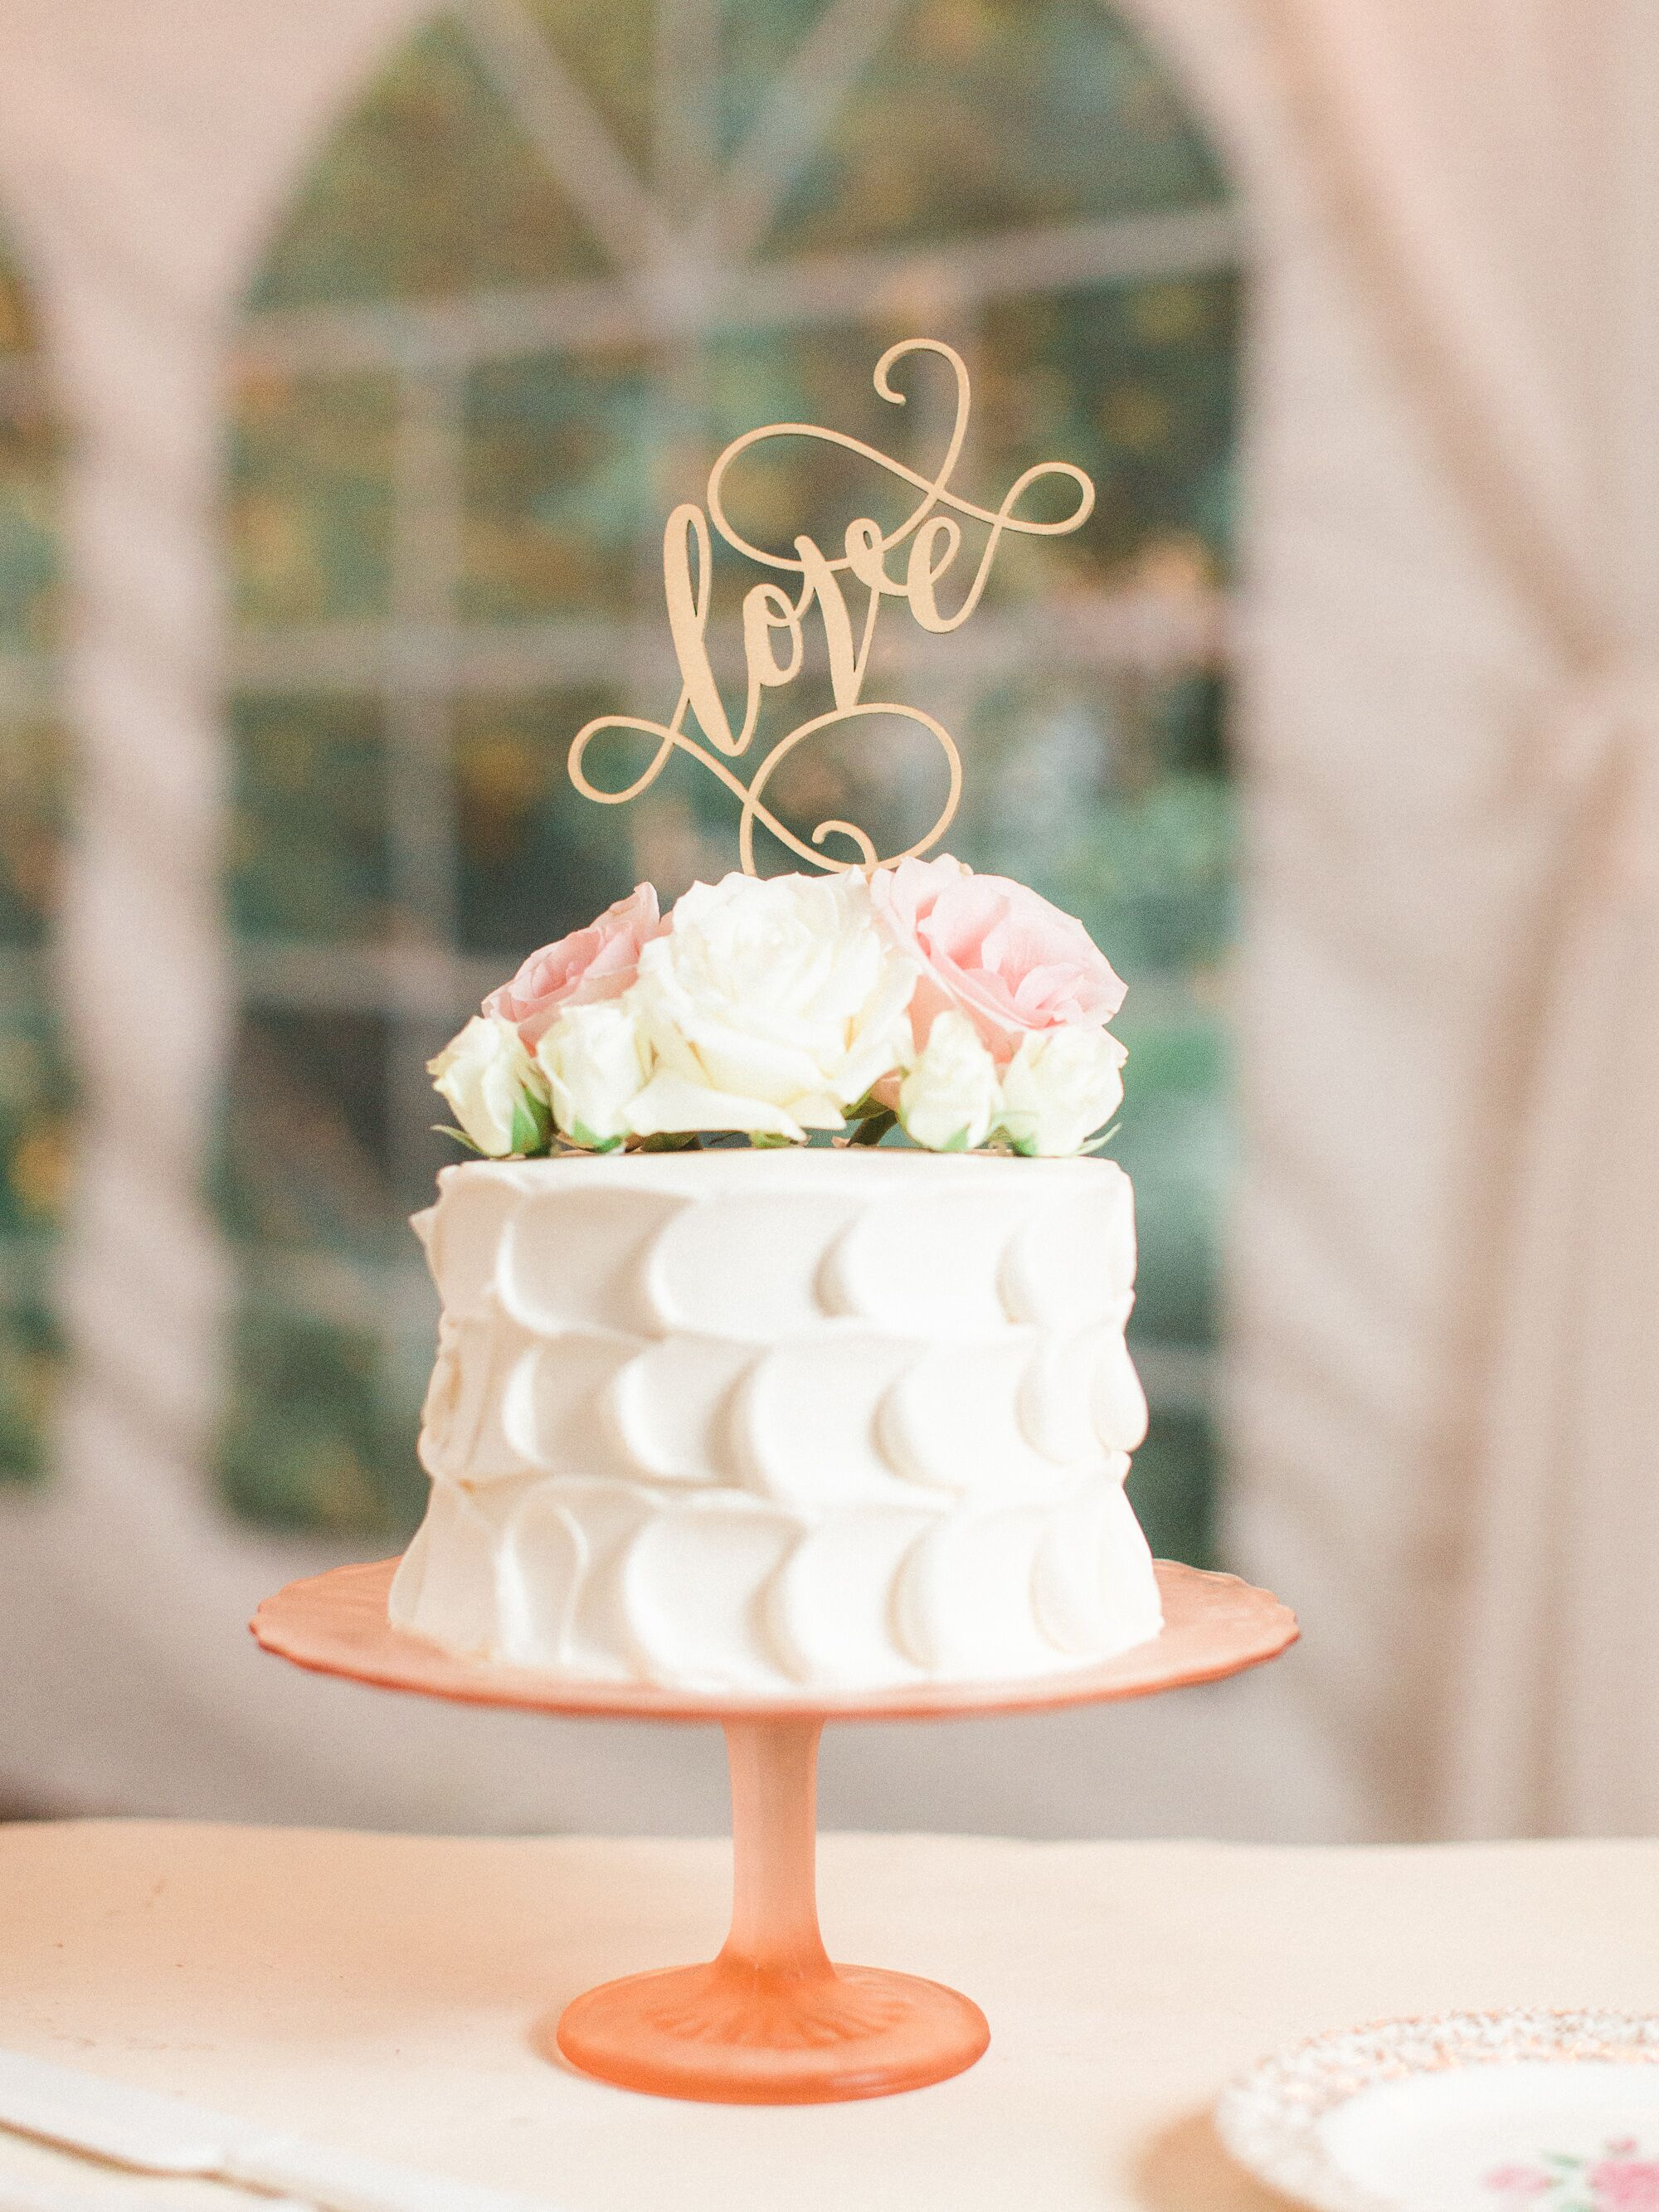 """Single Tier Wedding Cake With """"Love"""" Cake Topper"""